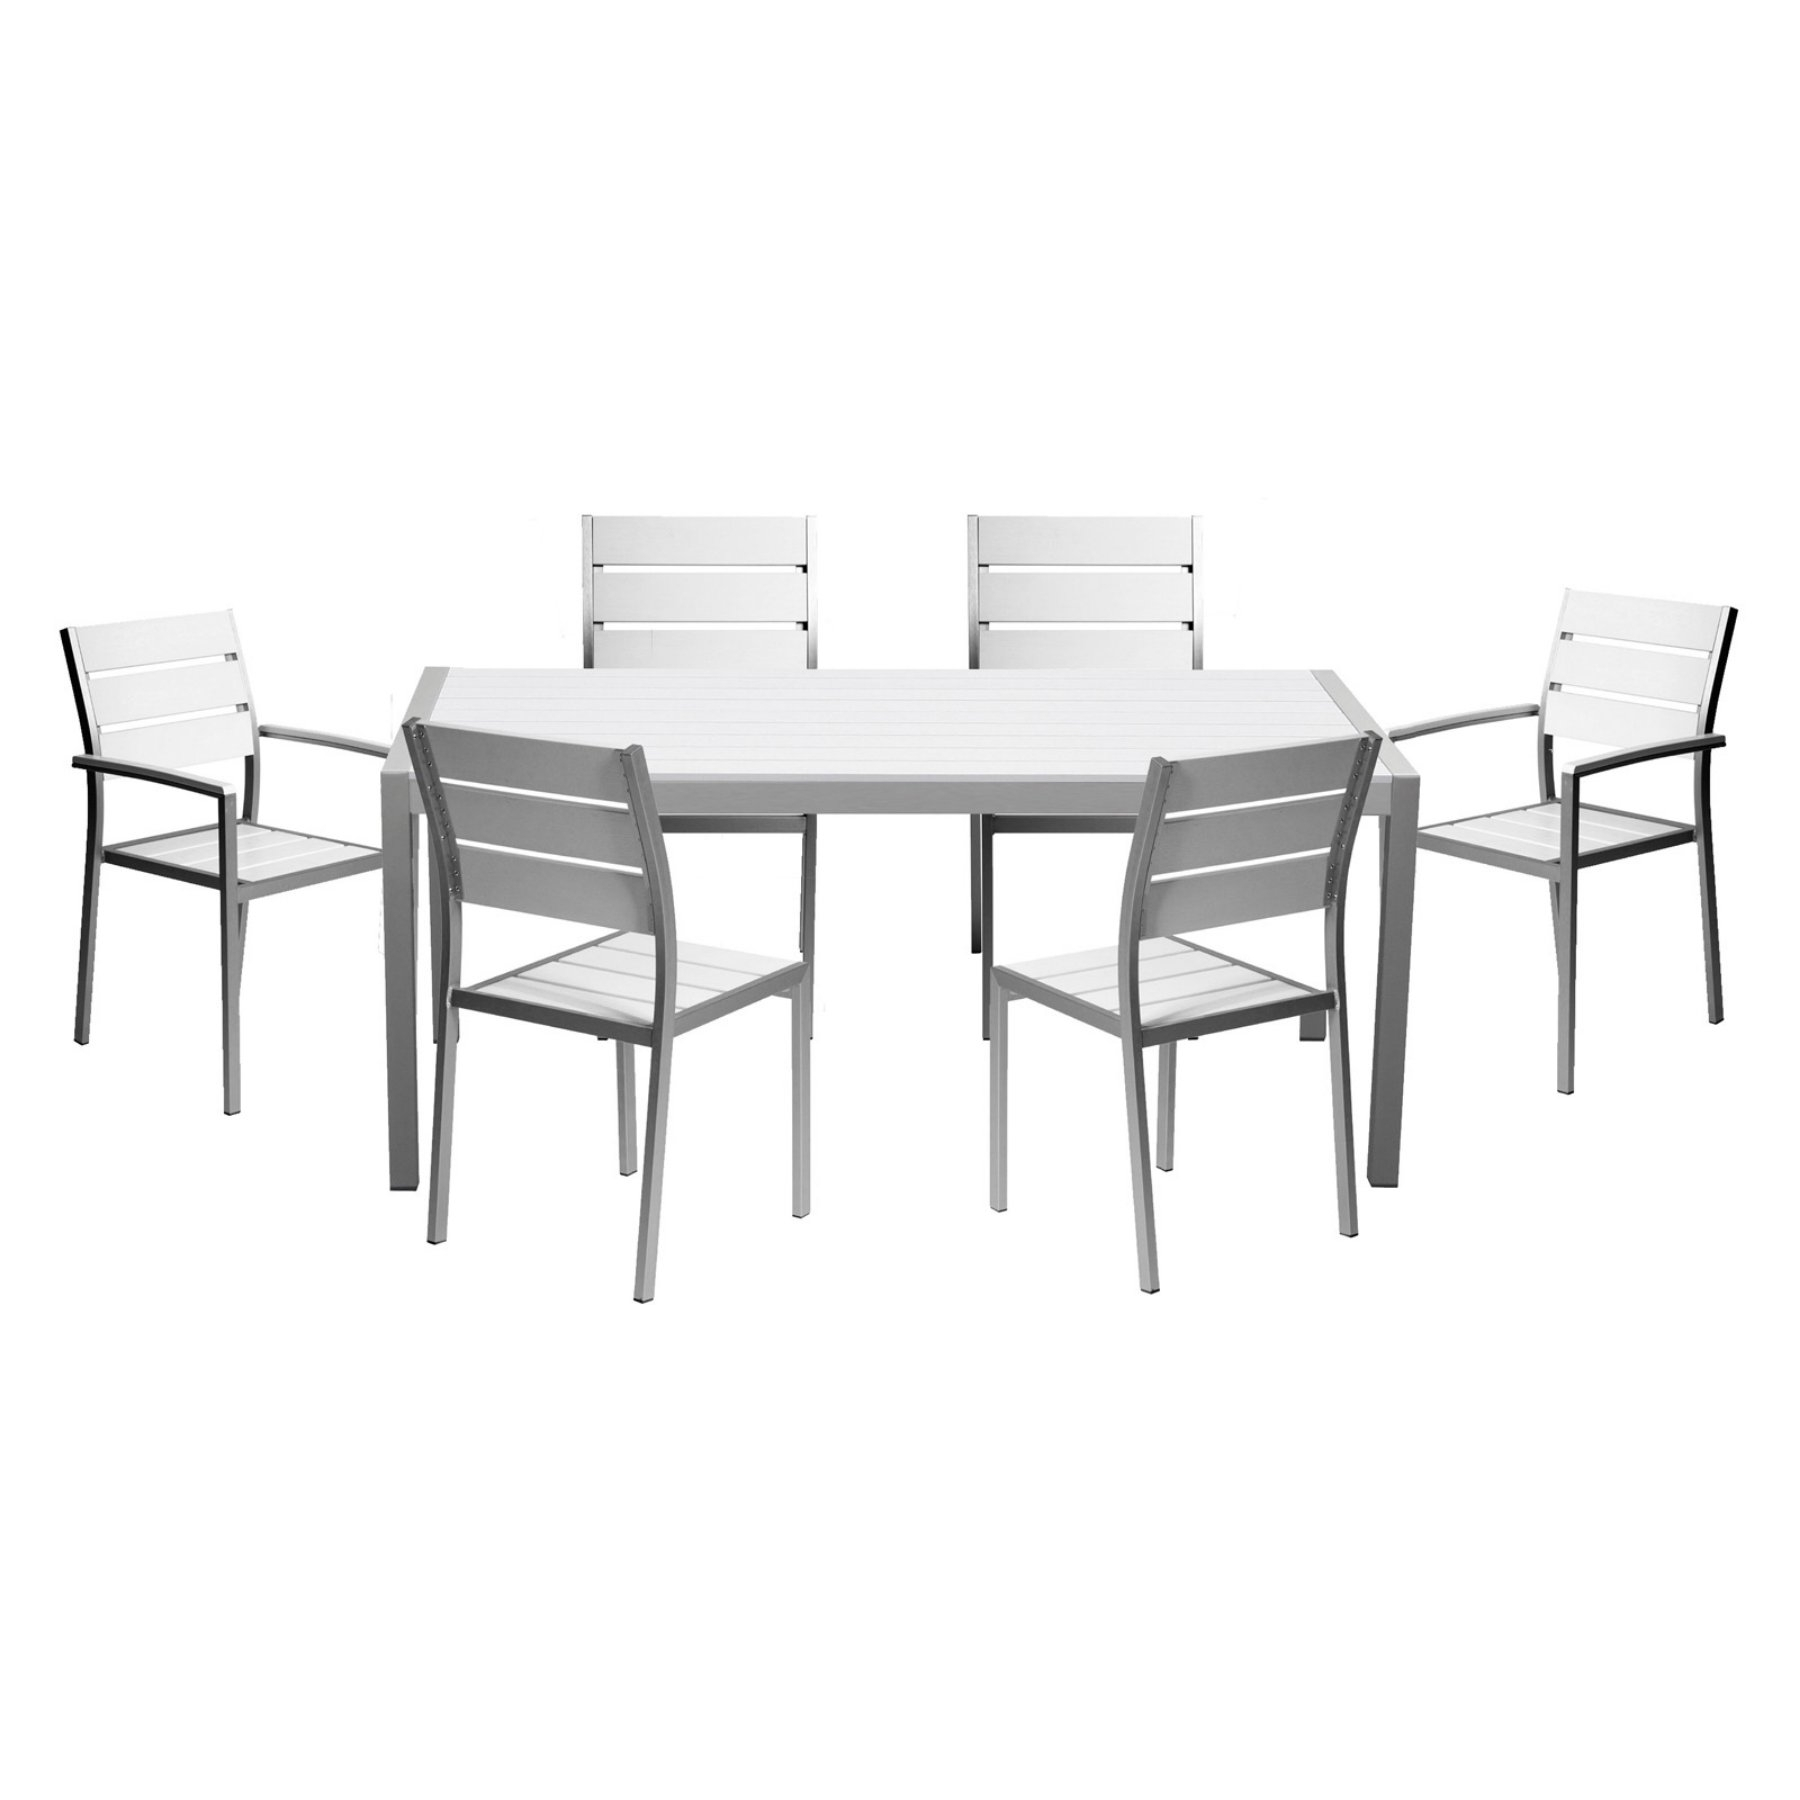 Pangea Outdoor Roy Aluminum 7 Piece Patio Dining Set In 2018 Intended For Preferred Market 7 Piece Dining Sets With Host And Side Chairs (View 18 of 25)